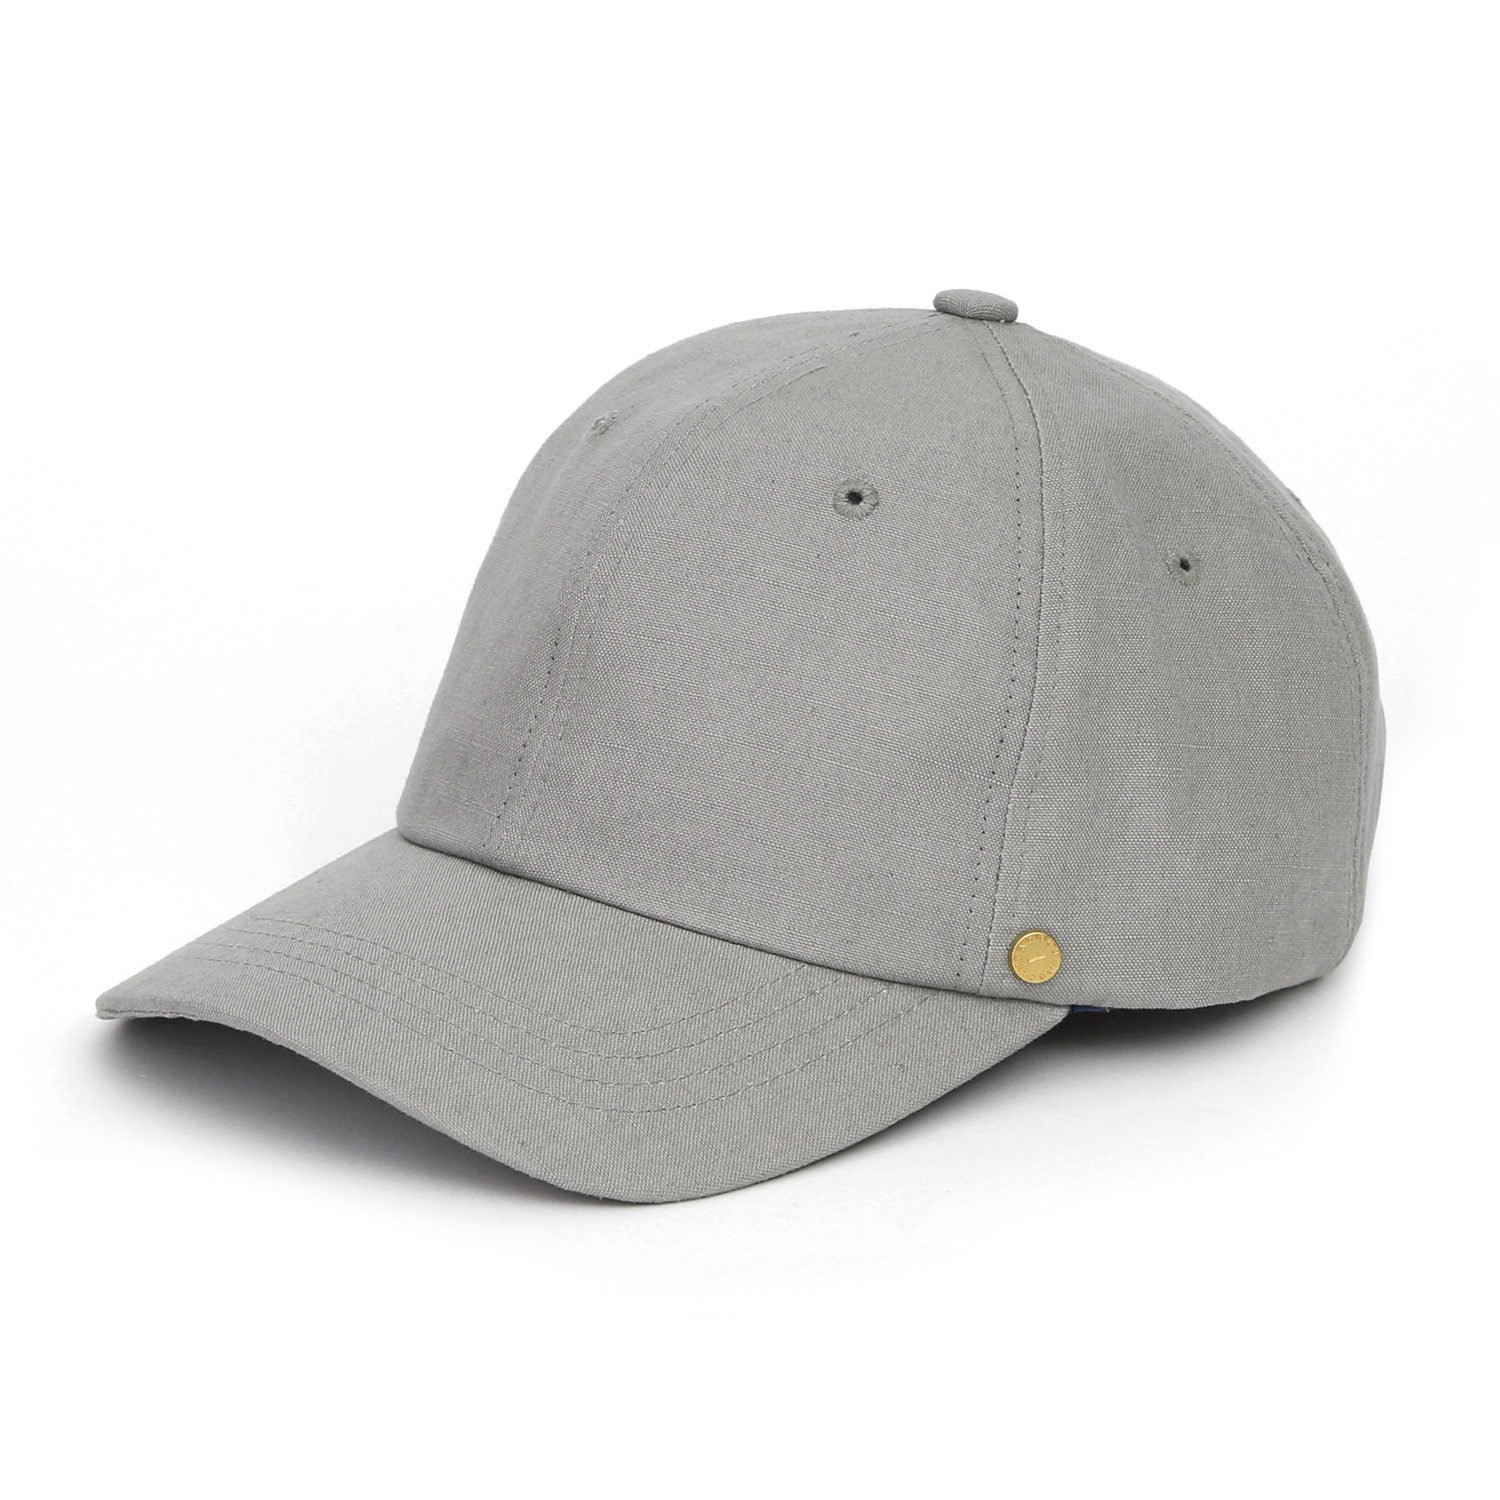 6PANNEL BALL CAP / LINEN / GREY